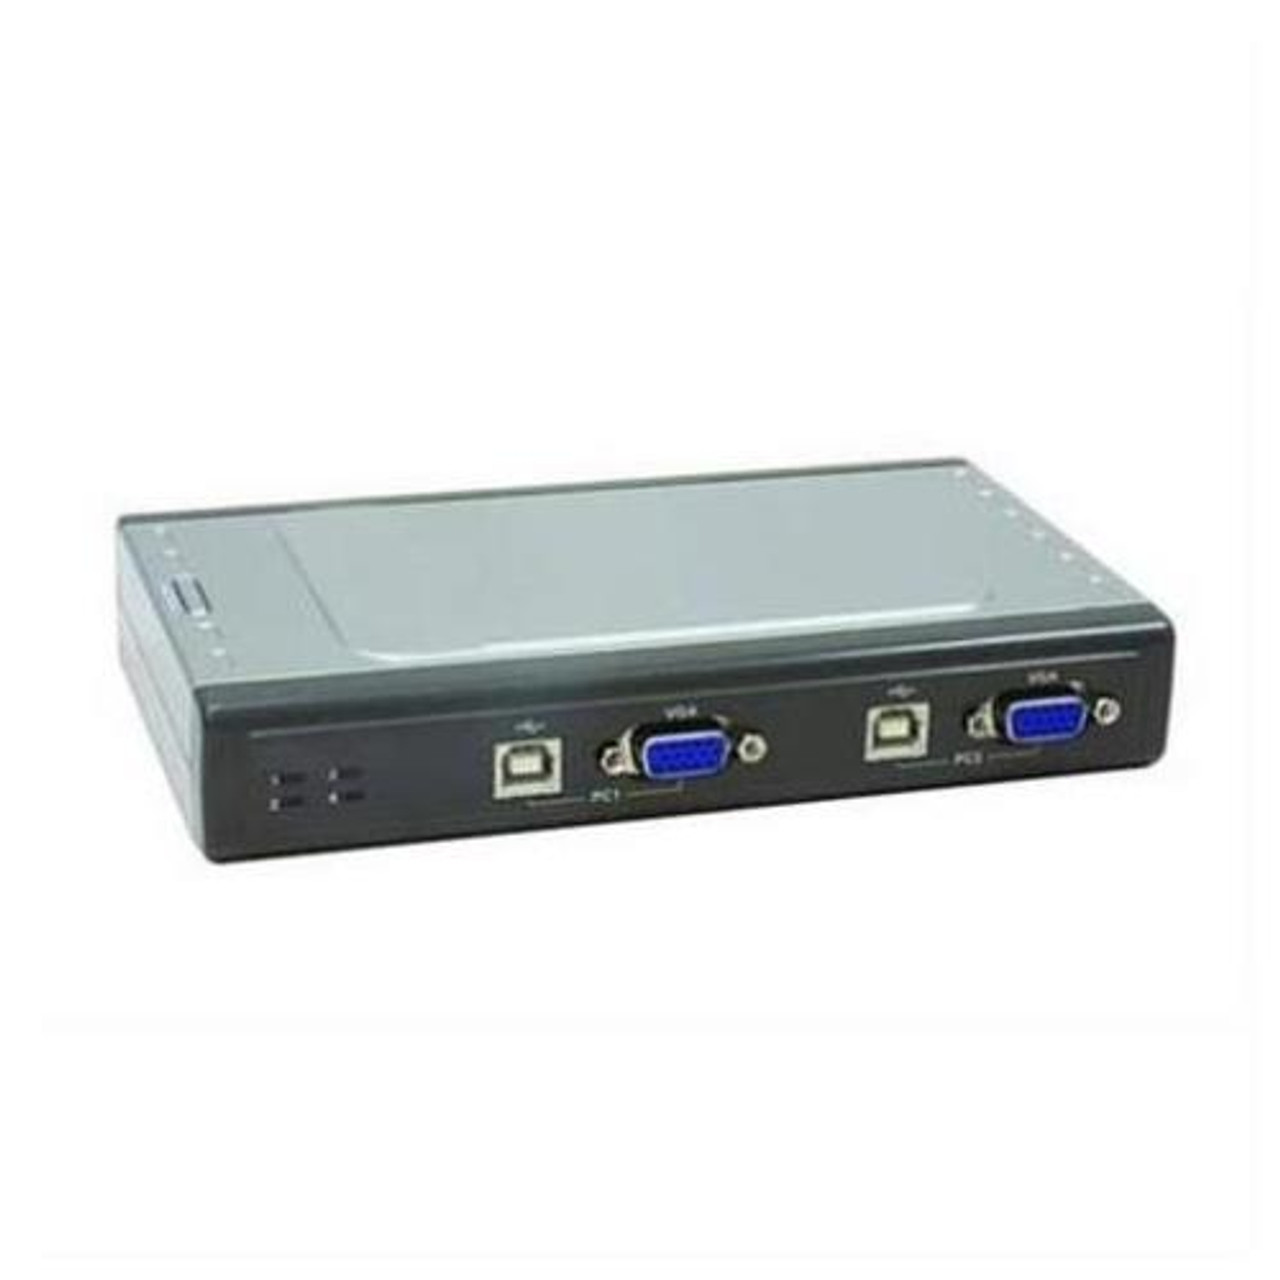 Avocent Cybex SwitchView 4 port KVM Switch 4 NEW Cable